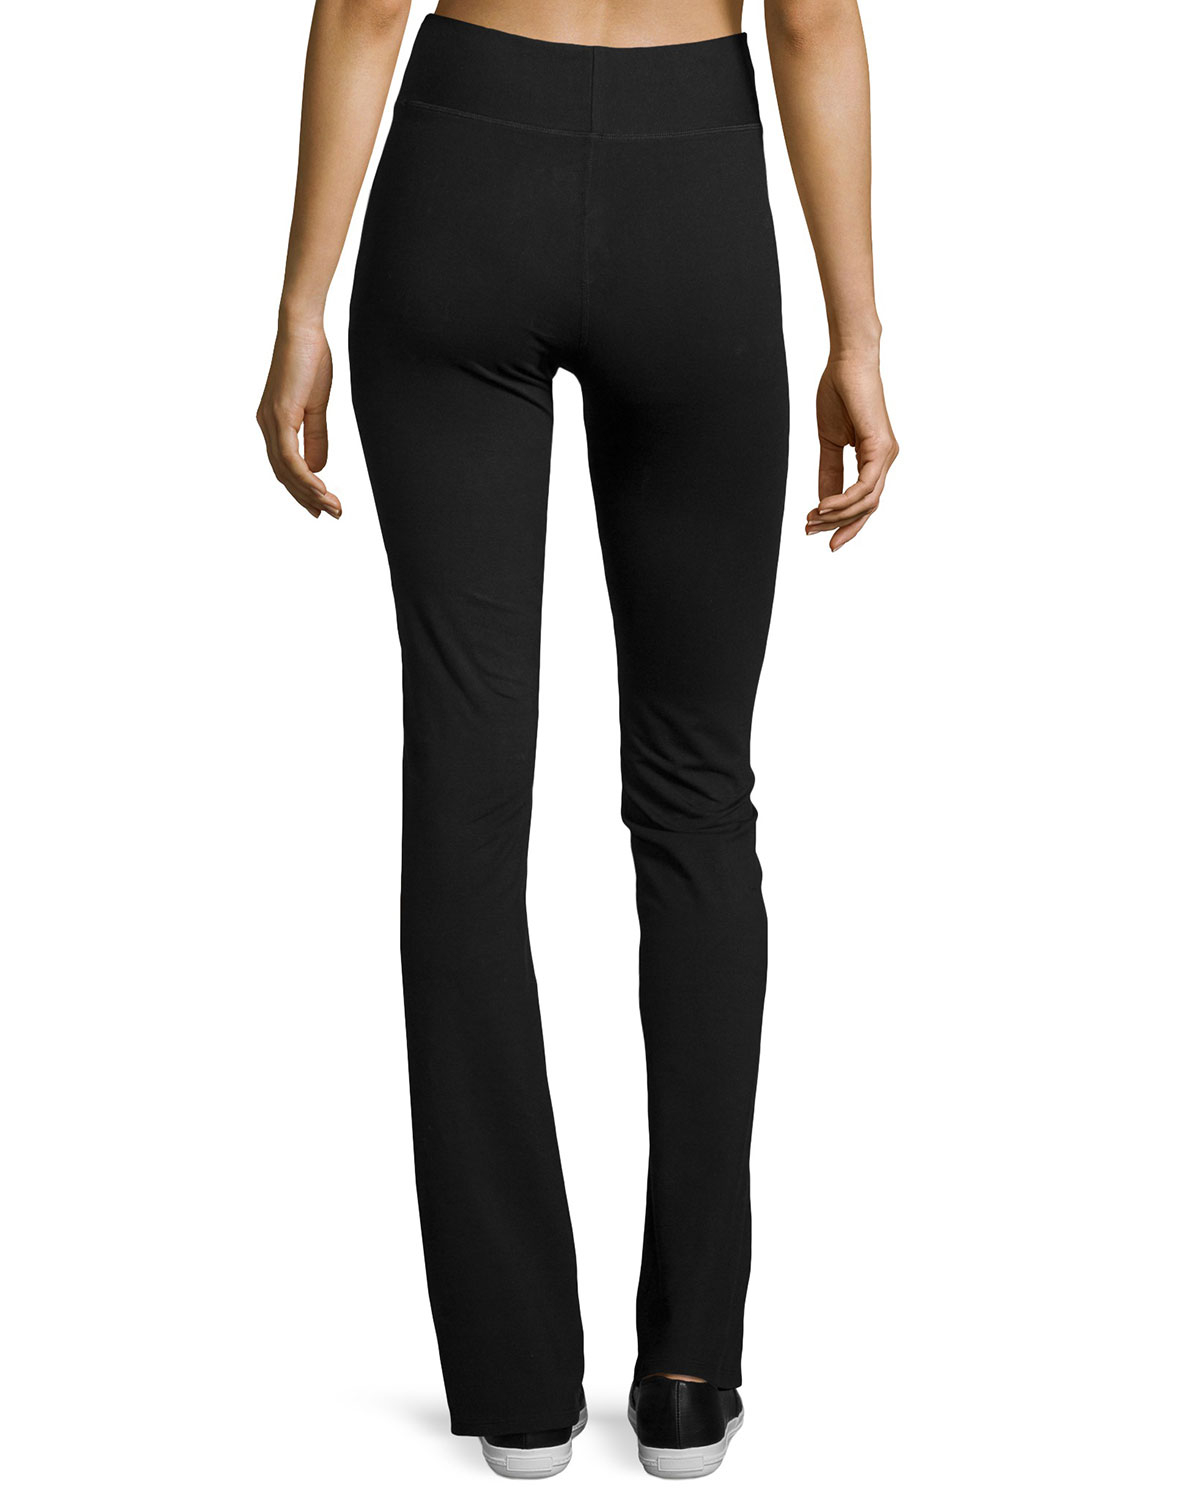 Yummie by heather thomson Straight-Leg Yoga Pants in Black | Lyst